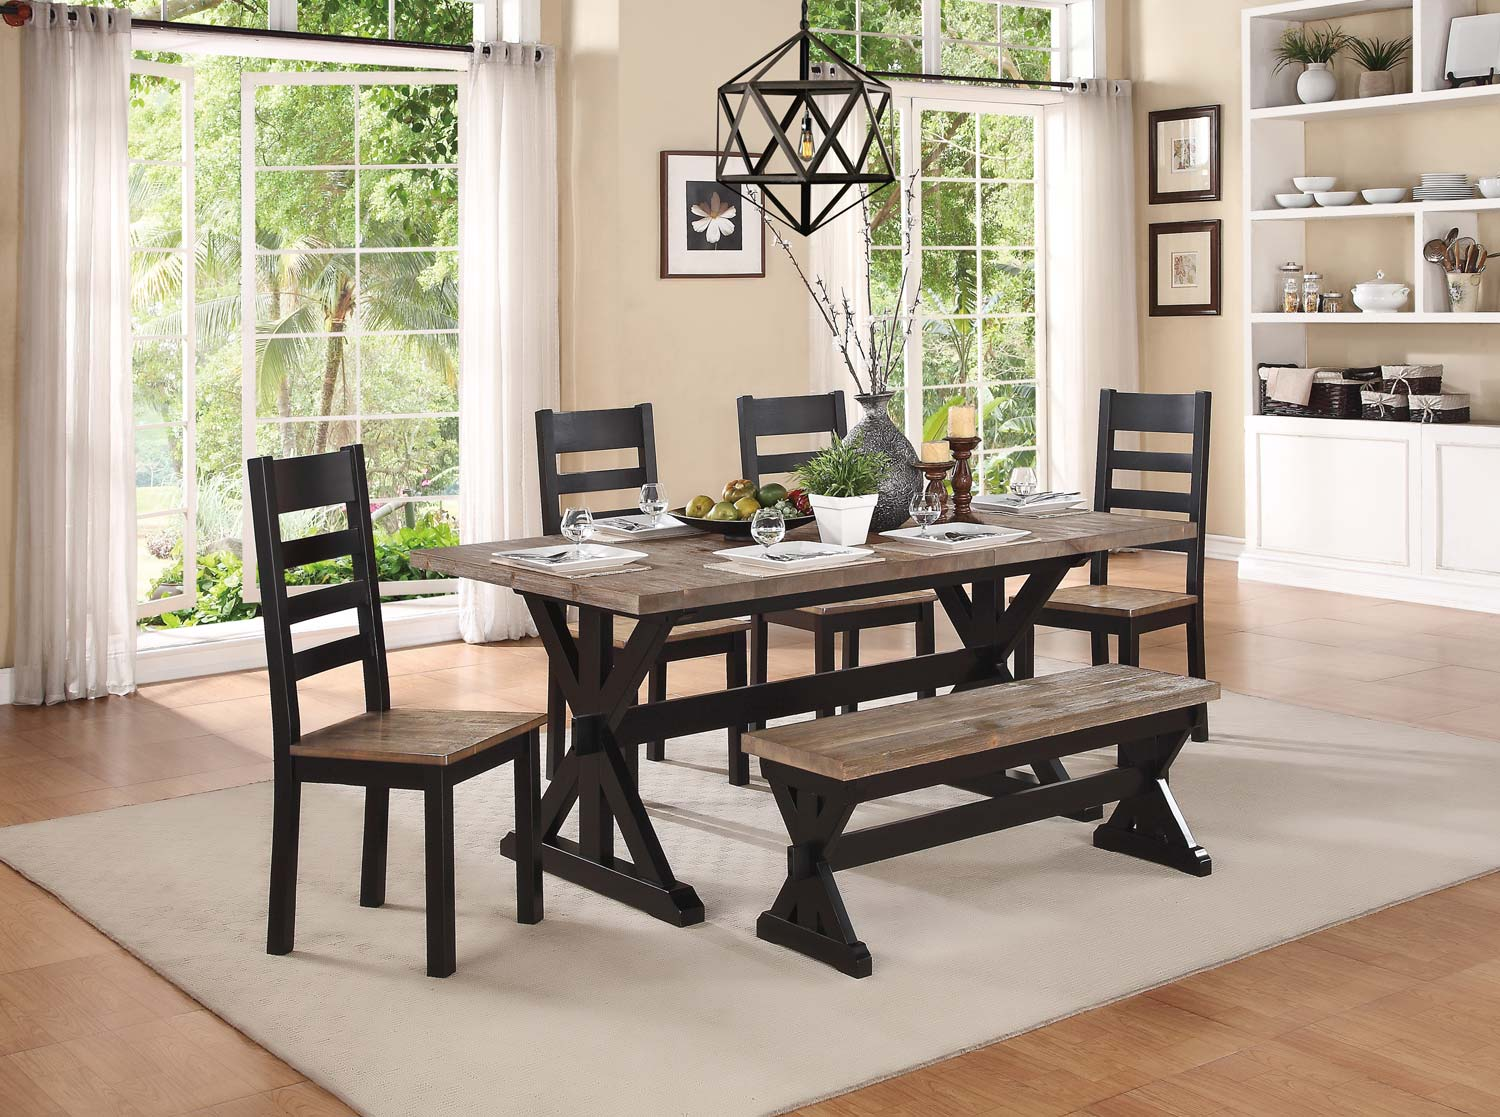 Homelegance North Port Dining Set - Two Tone Black/Brown